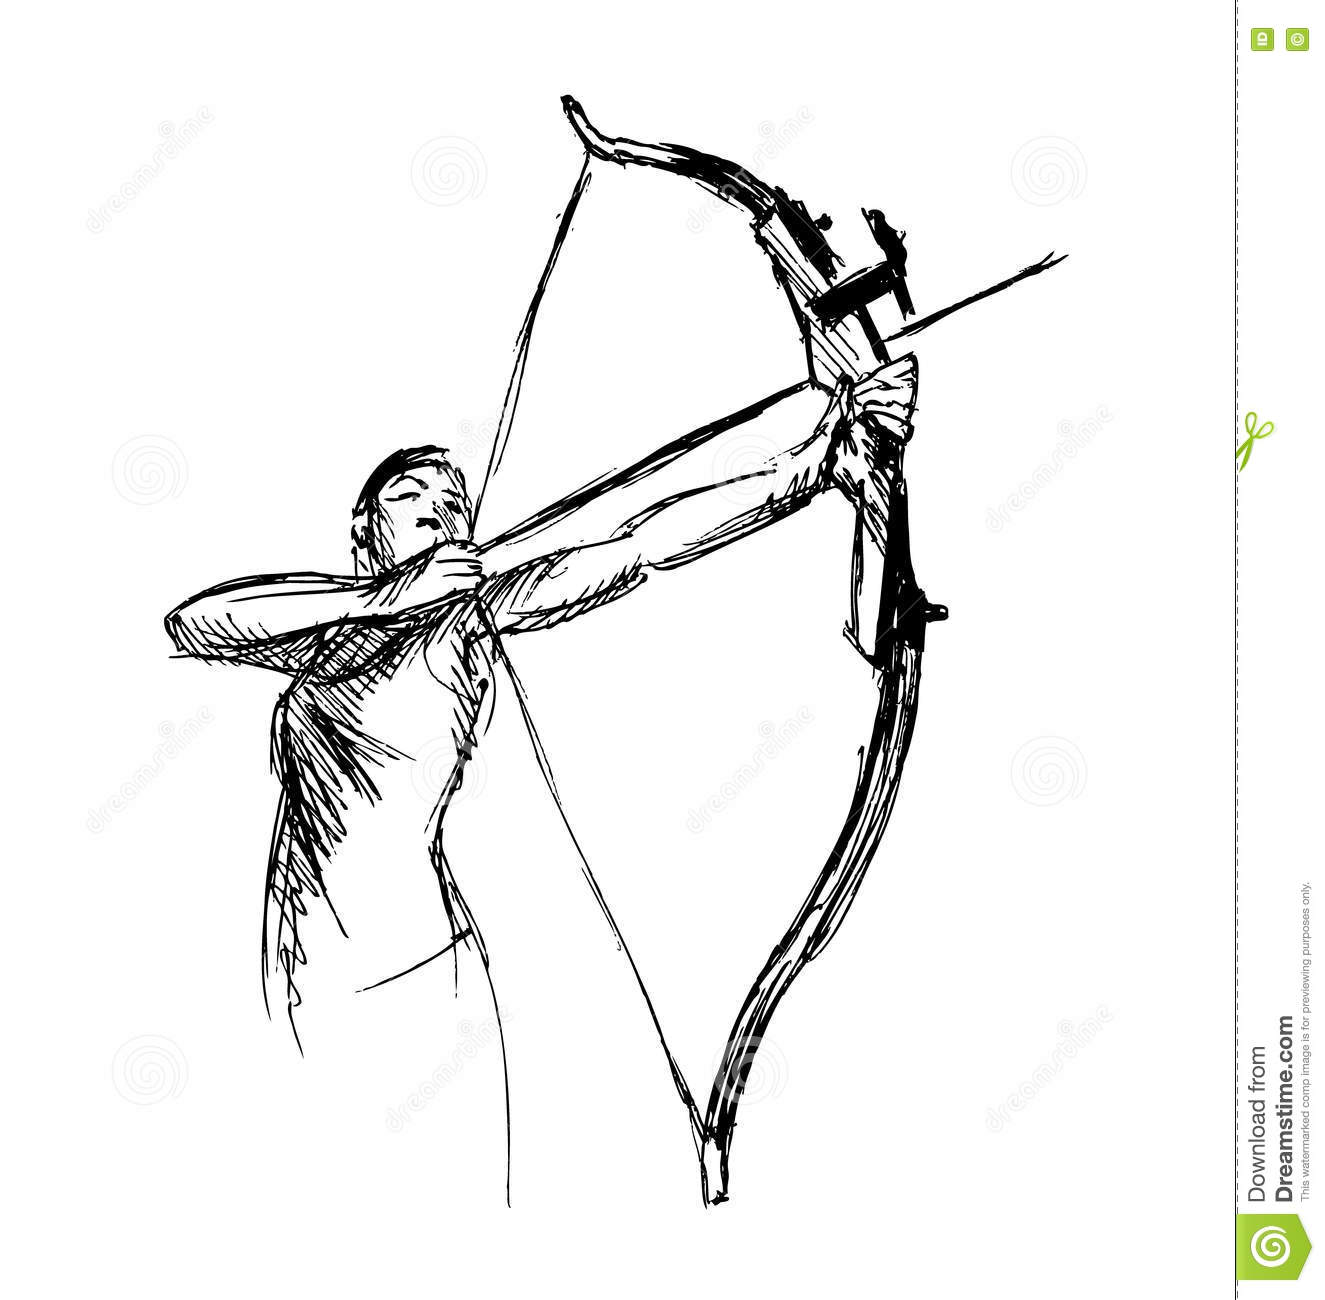 Bow And Arrow Pencil Drawing